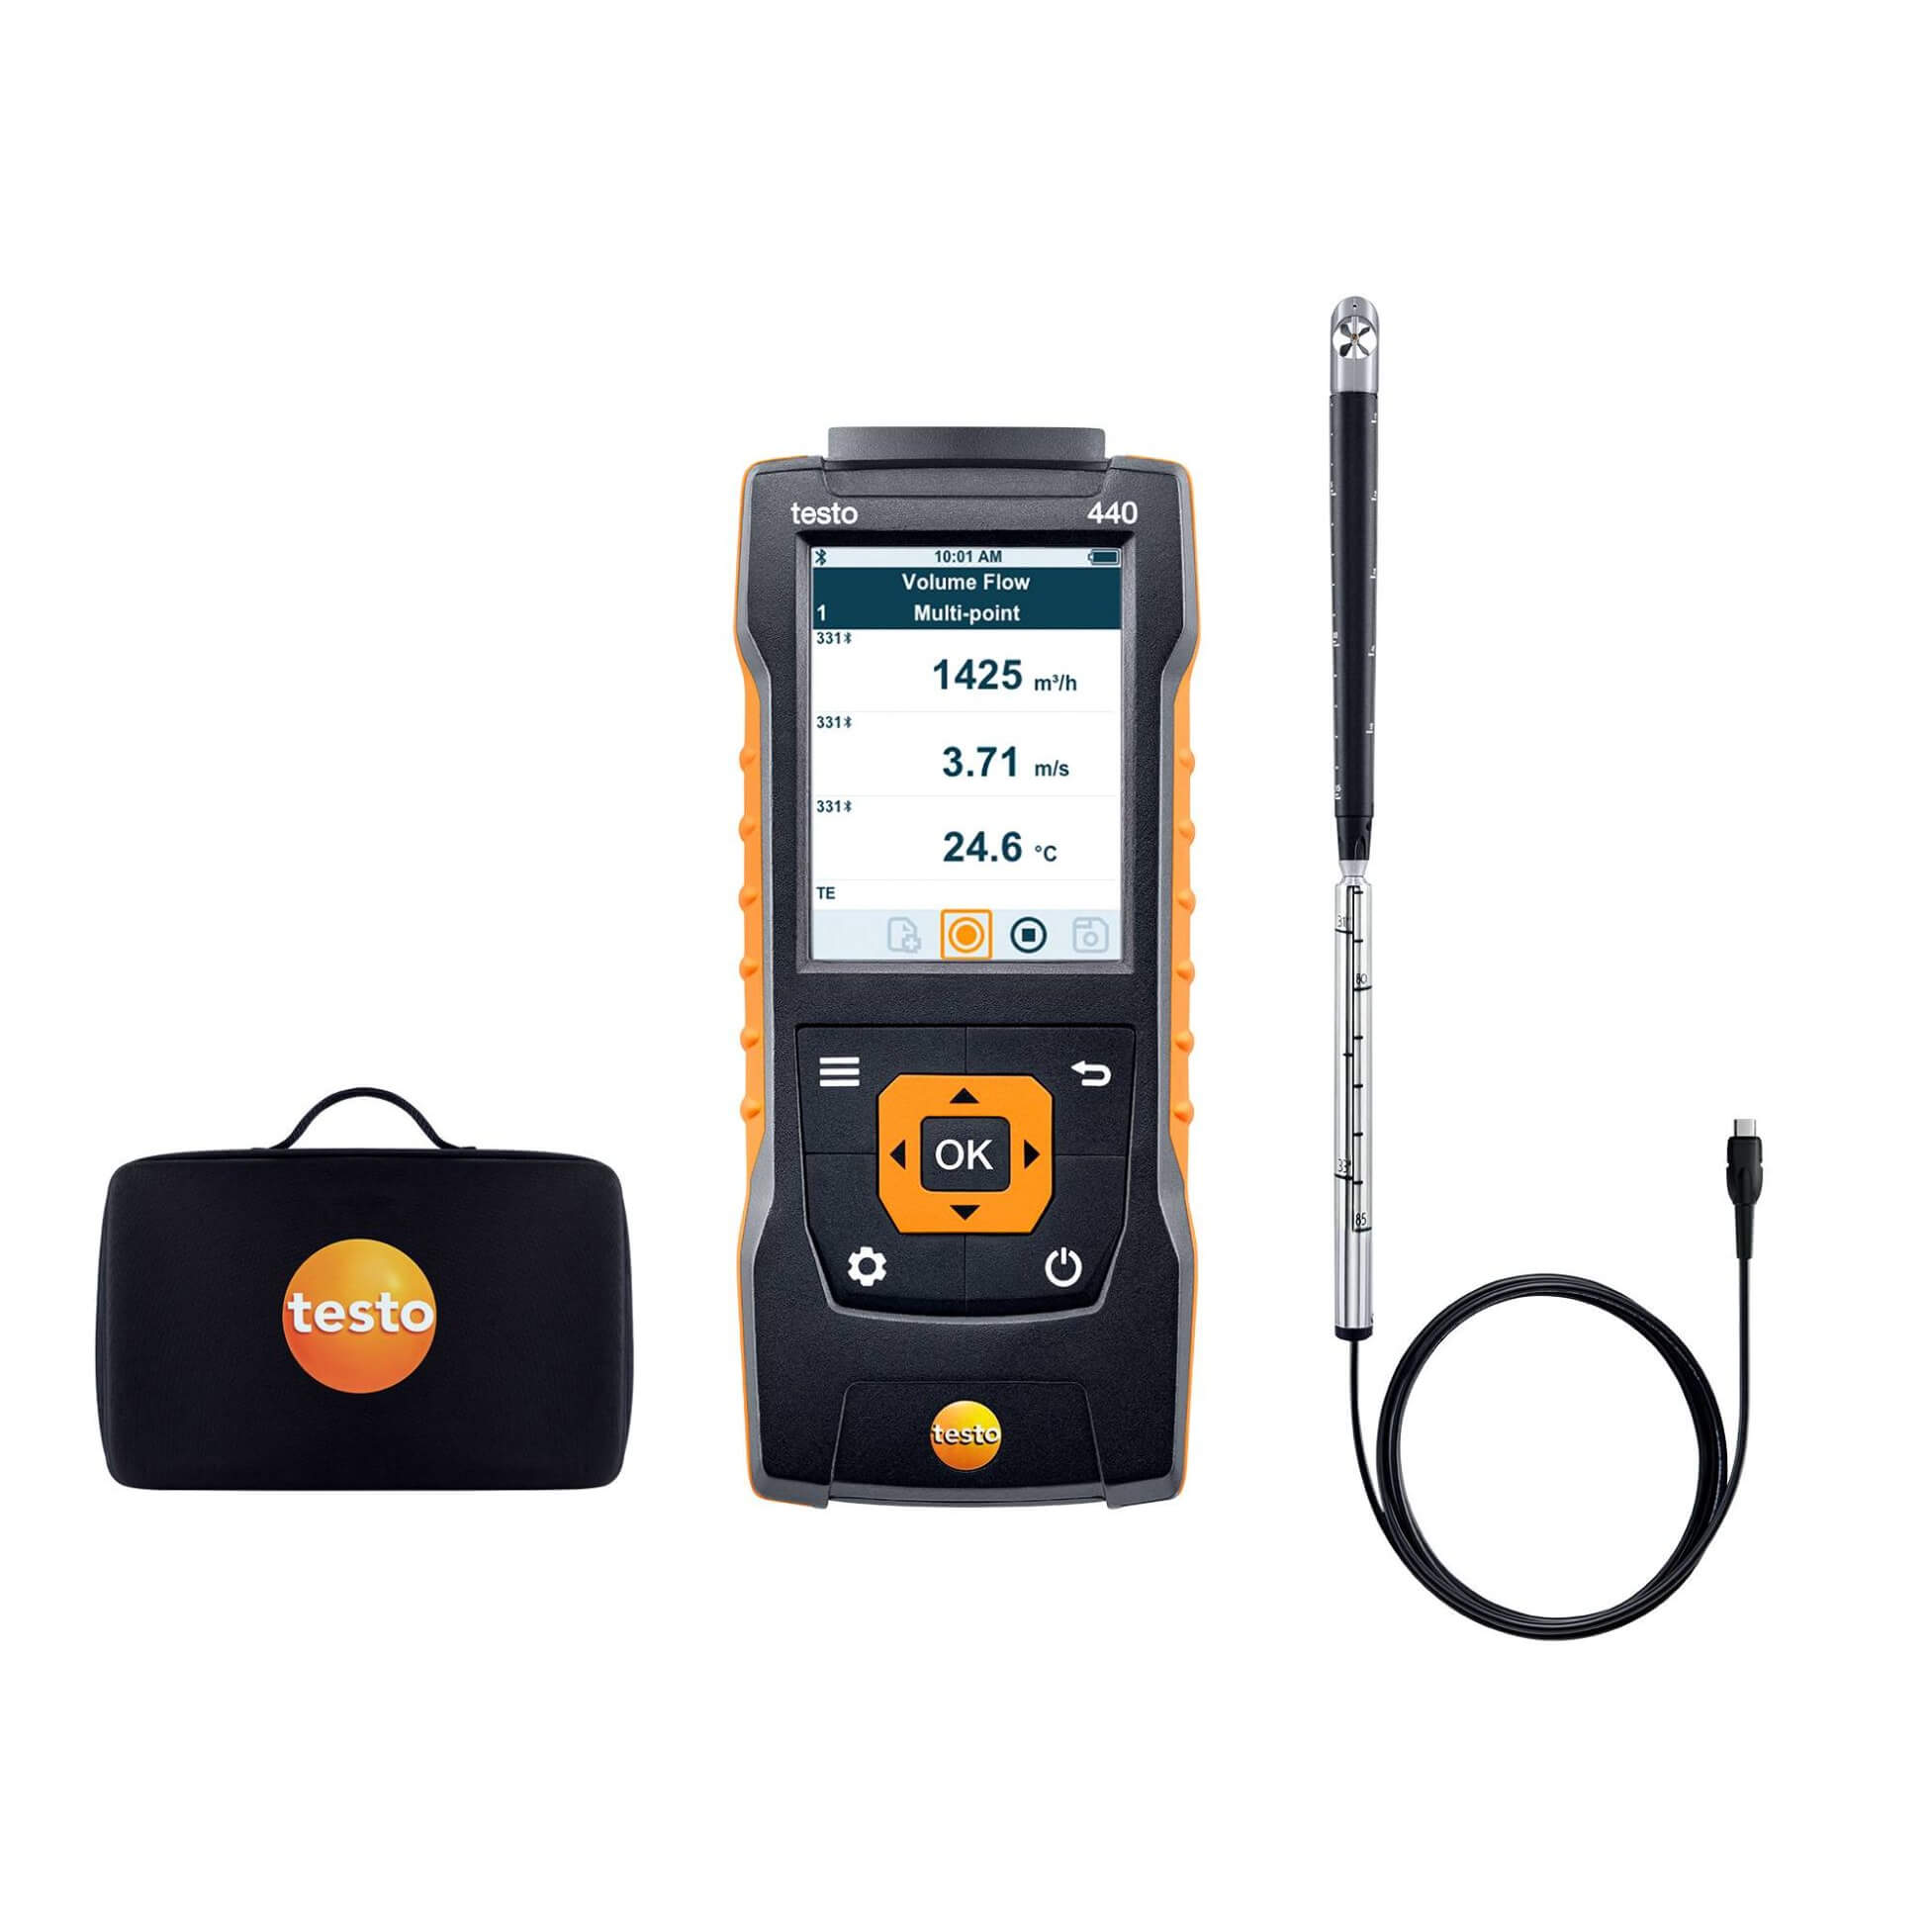 Testo 440 Air Flow Velocity IAQ Instrument 16 mm Vane Kit 0563 4401